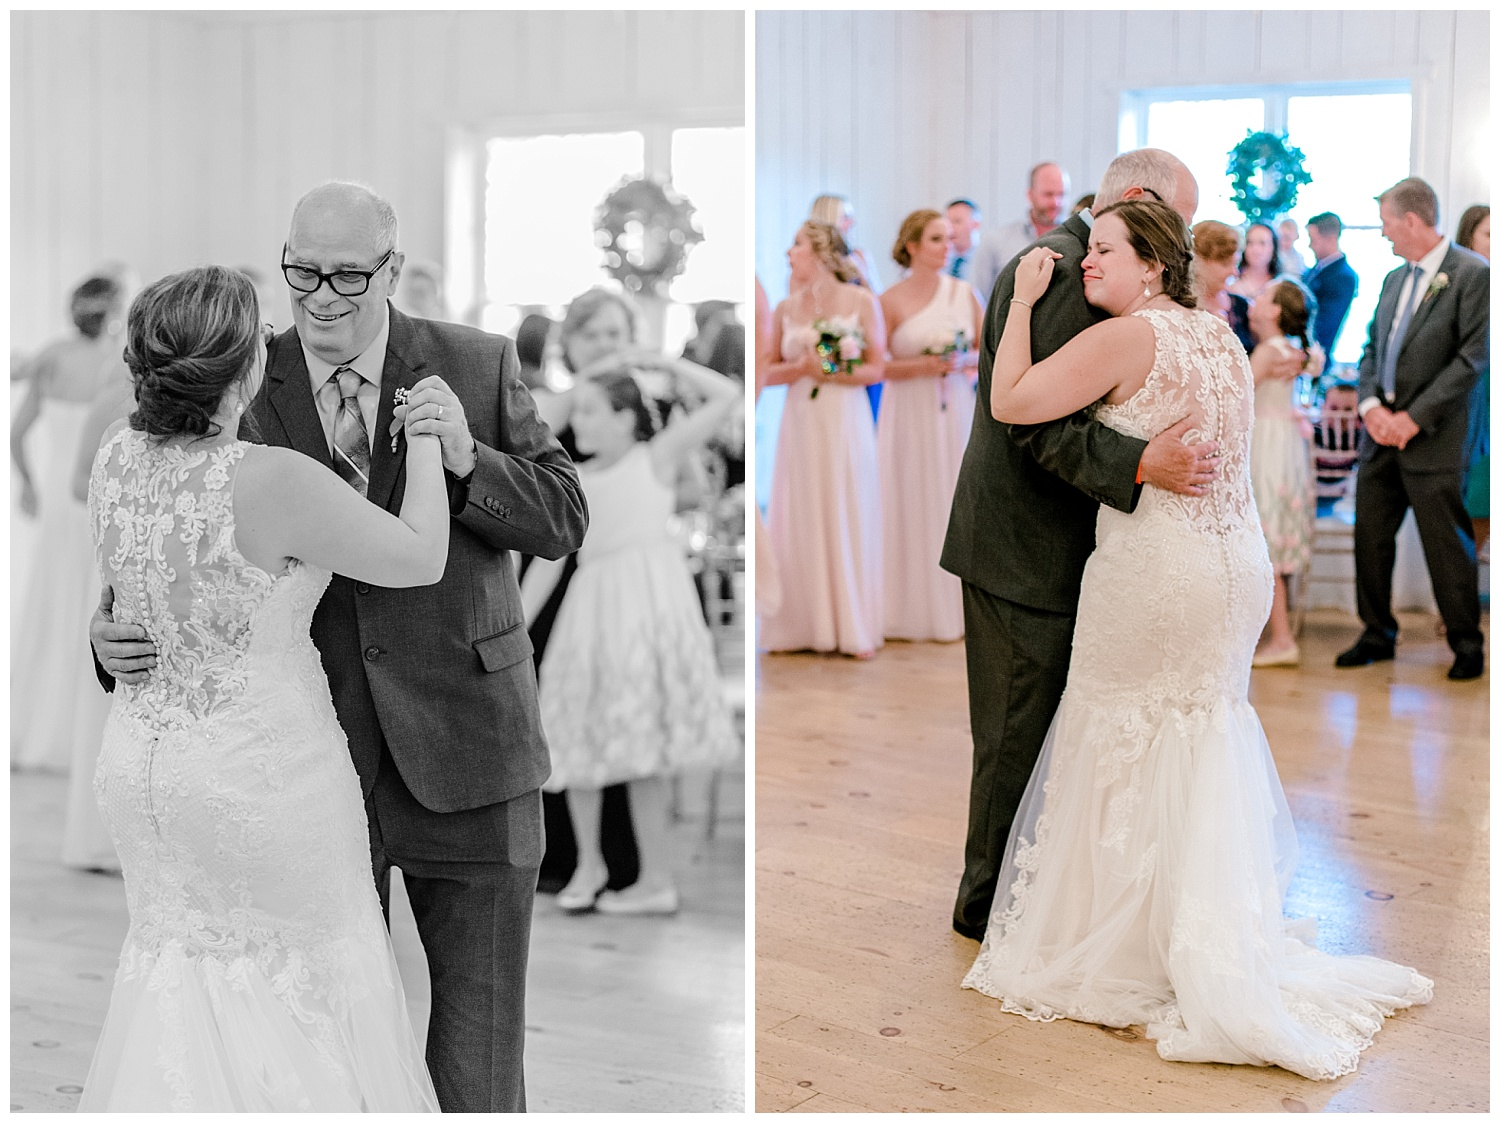 Navy and Blush pink inspired summertime whitewoods wedding in Northeastern Pennsylvania NEPA wapwallopen wedding venue by  PA based wedding and lifestyle photographer Lytle photography_0048.jpg